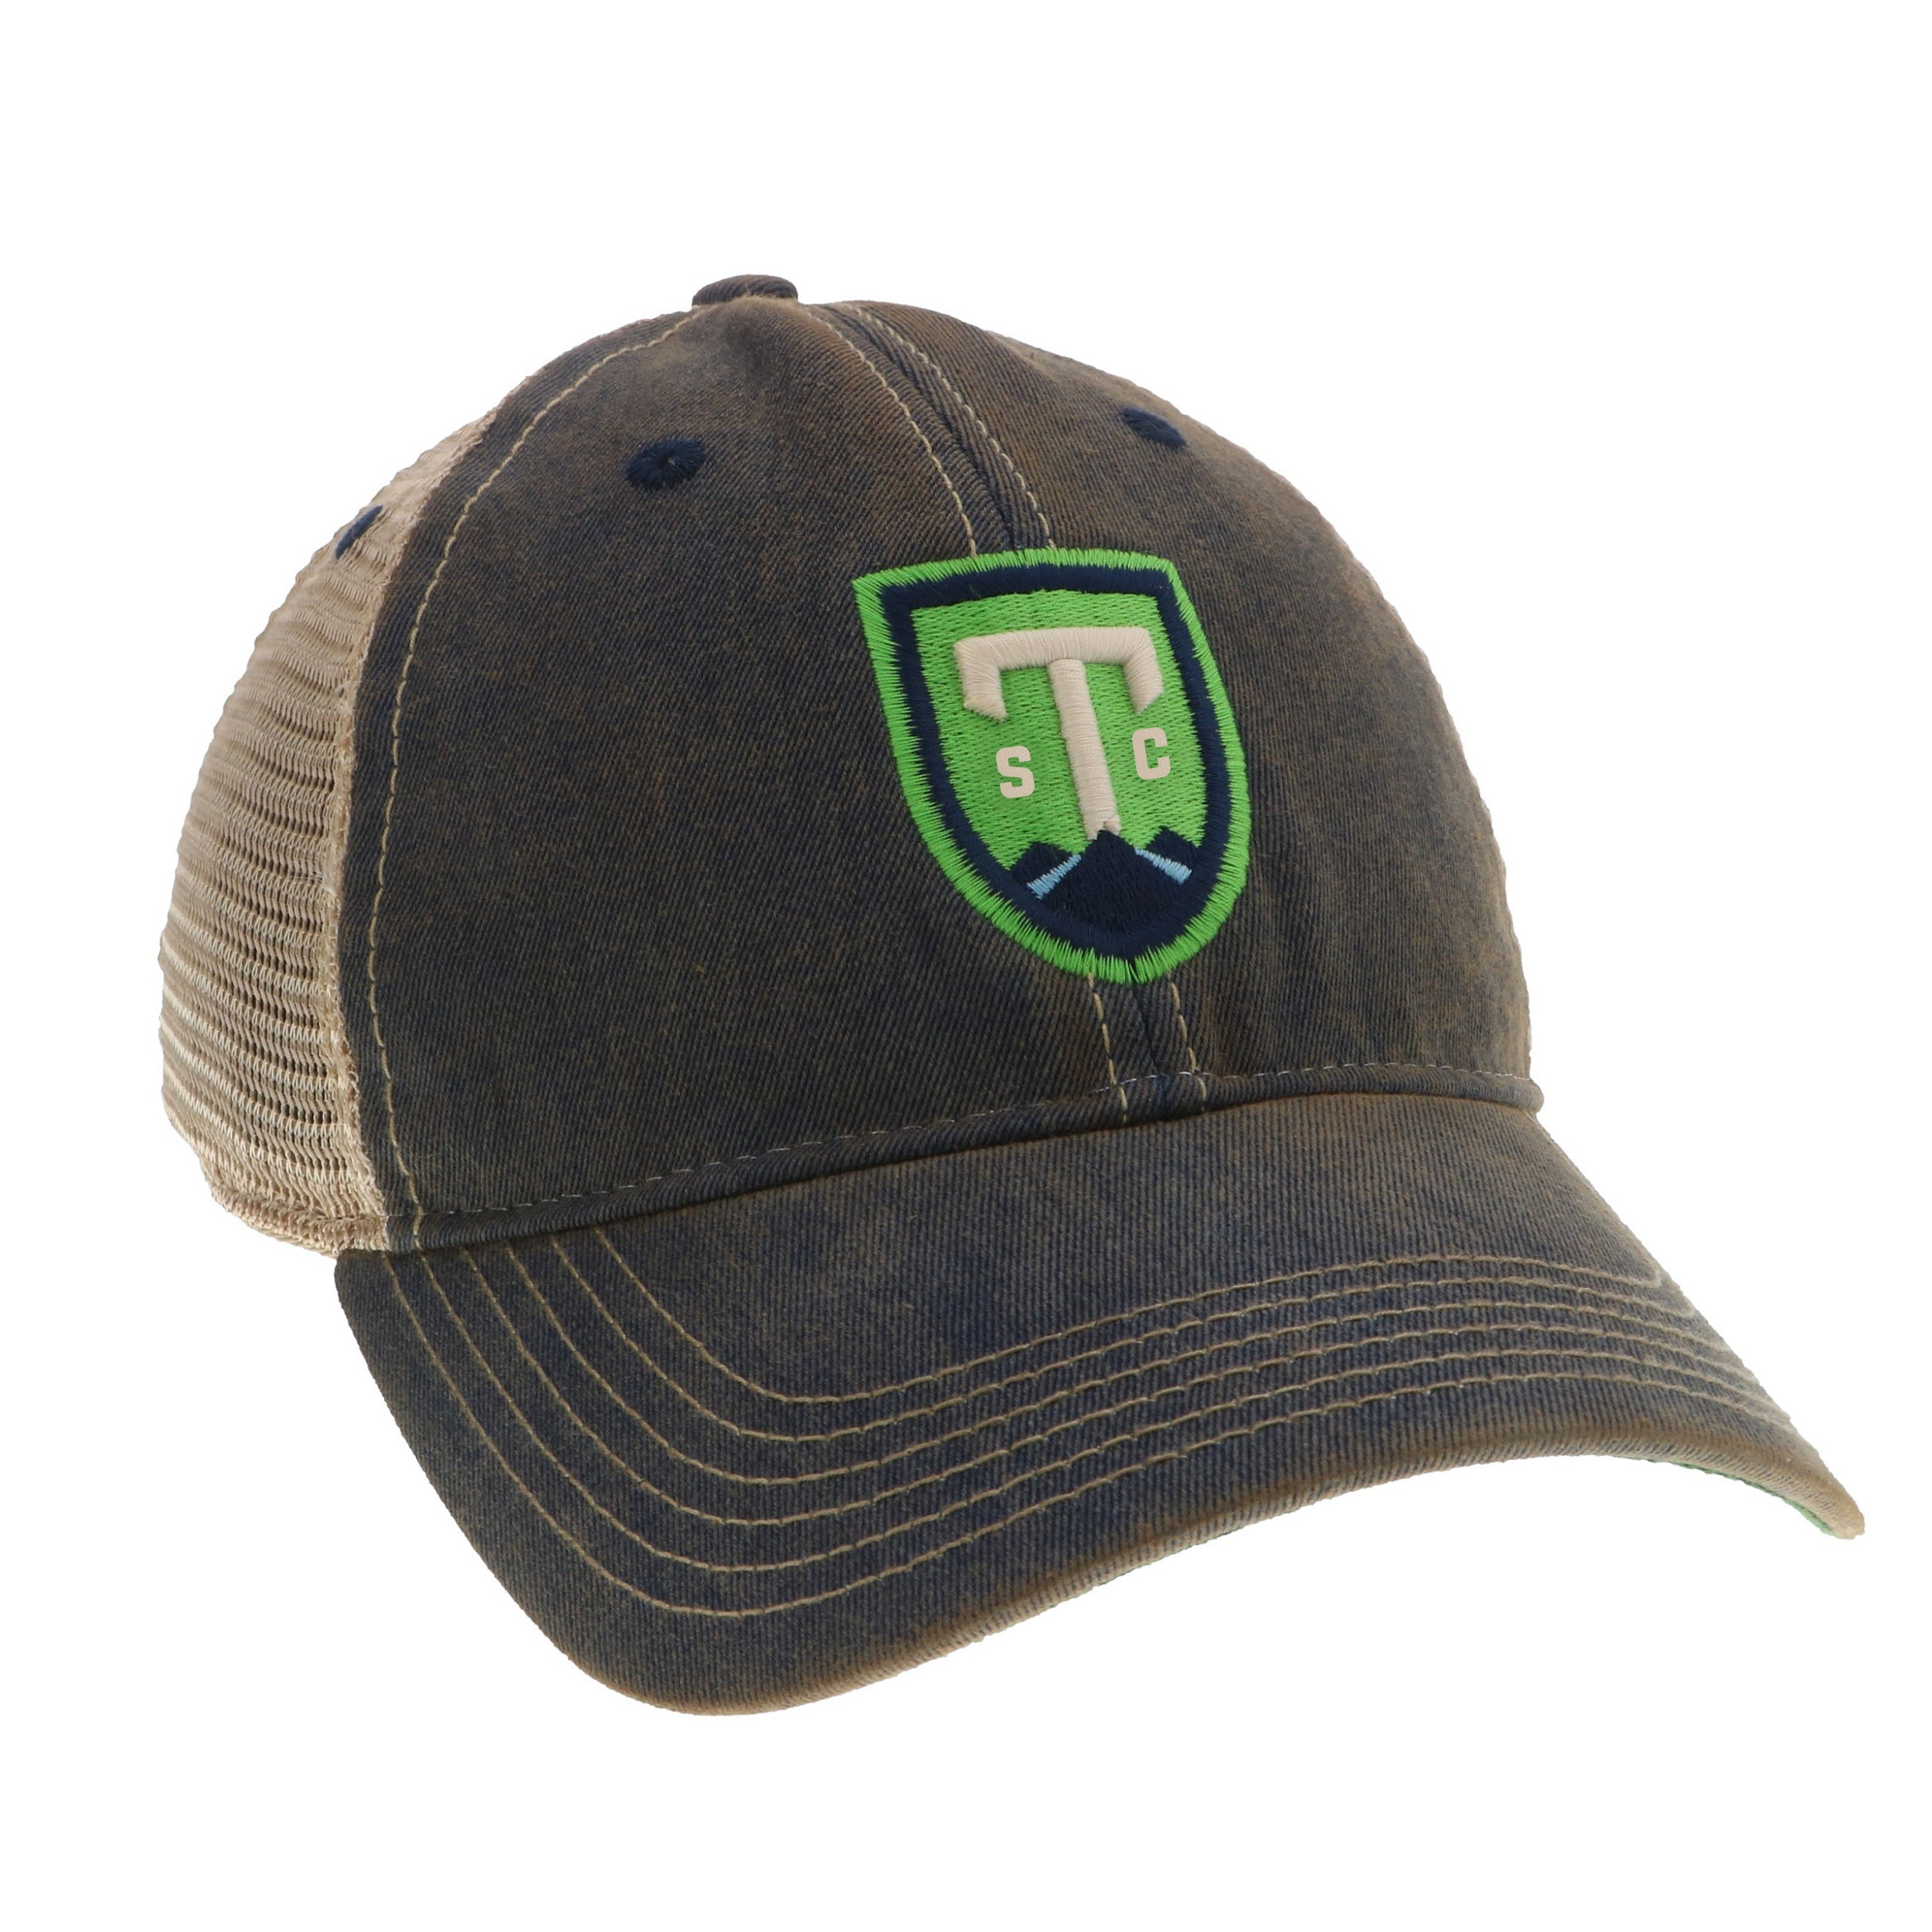 Greenville triumph legacy old favorite navy trucker hat greenville jpg  2500x2500 Legacy old favorite trucker cap 16ea55ce2008